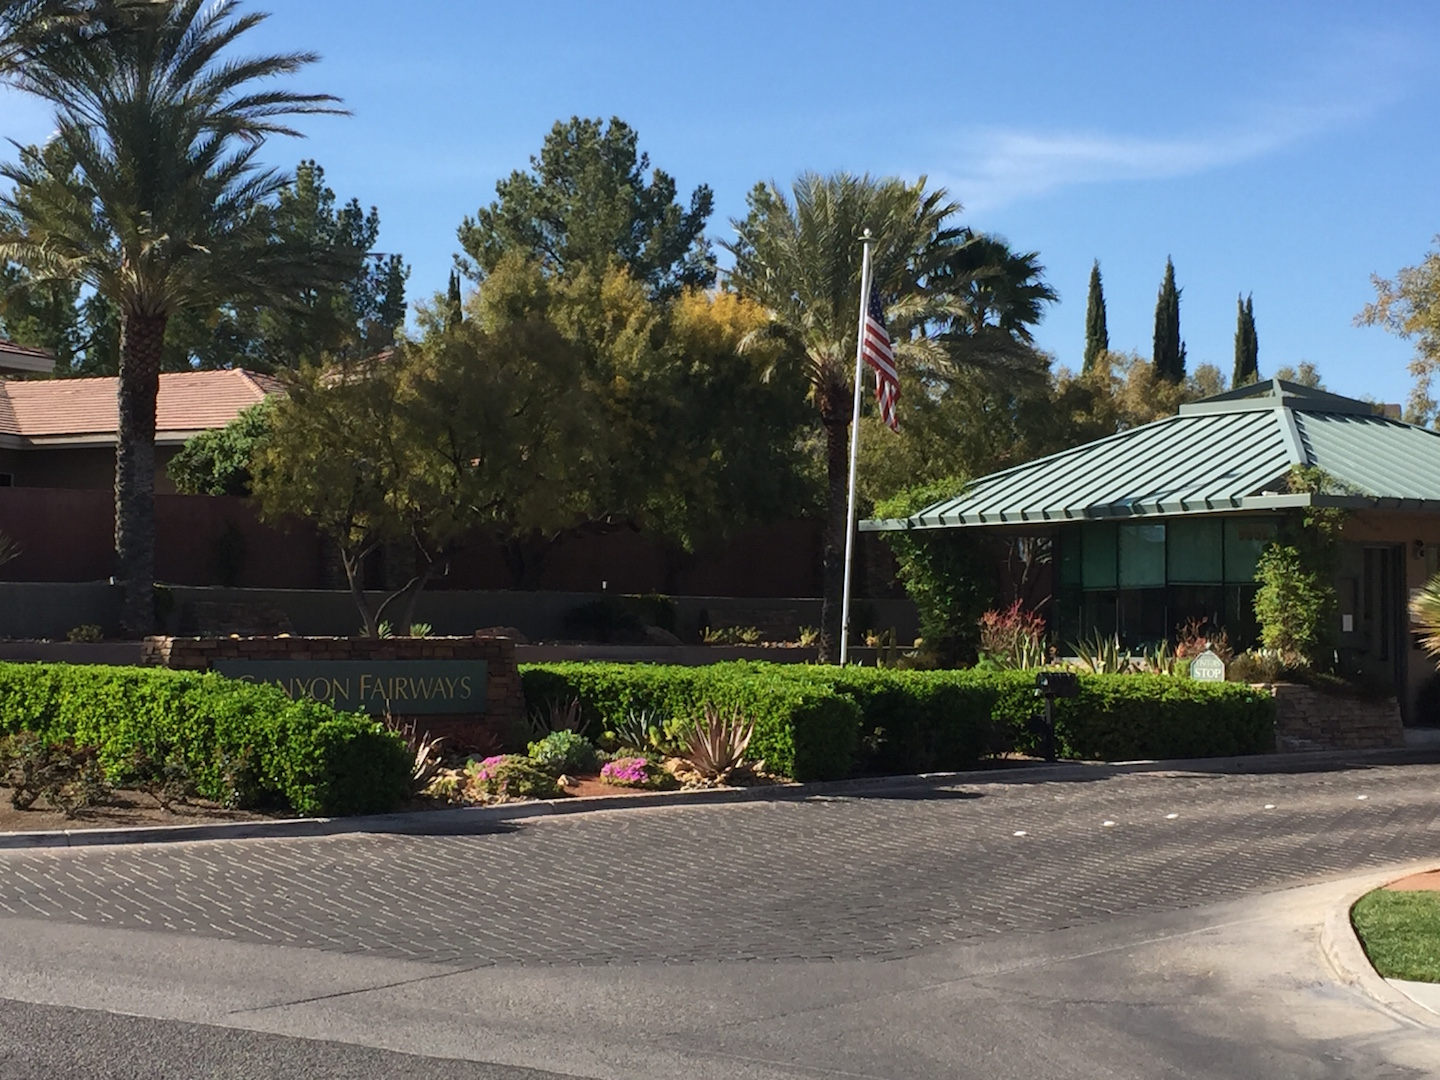 Las-Vegas-Homes-For-Sale-In-Summerlin-Canyon-Fairways